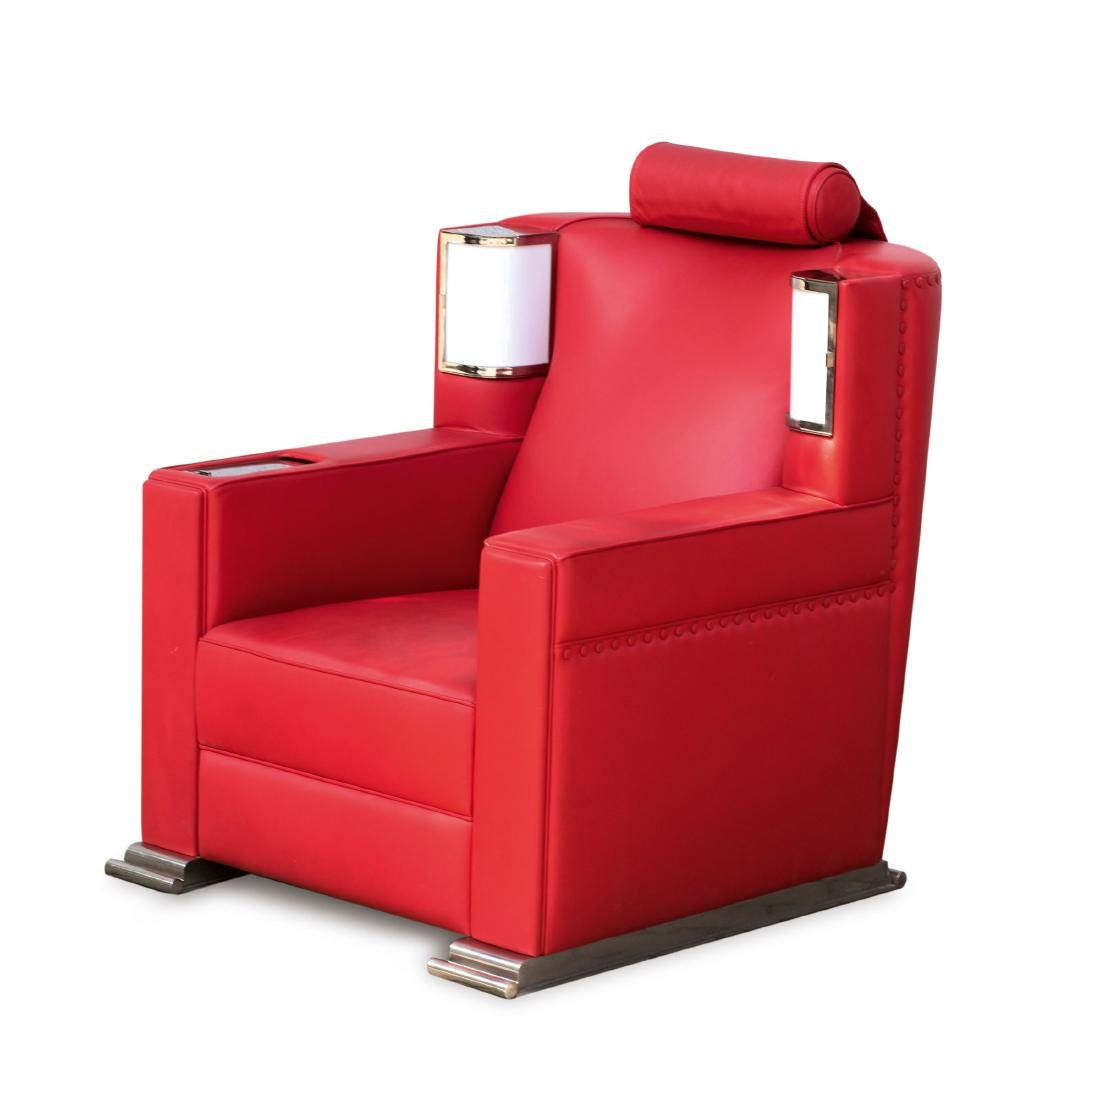 'Red comfortable chair', 1931 - 2